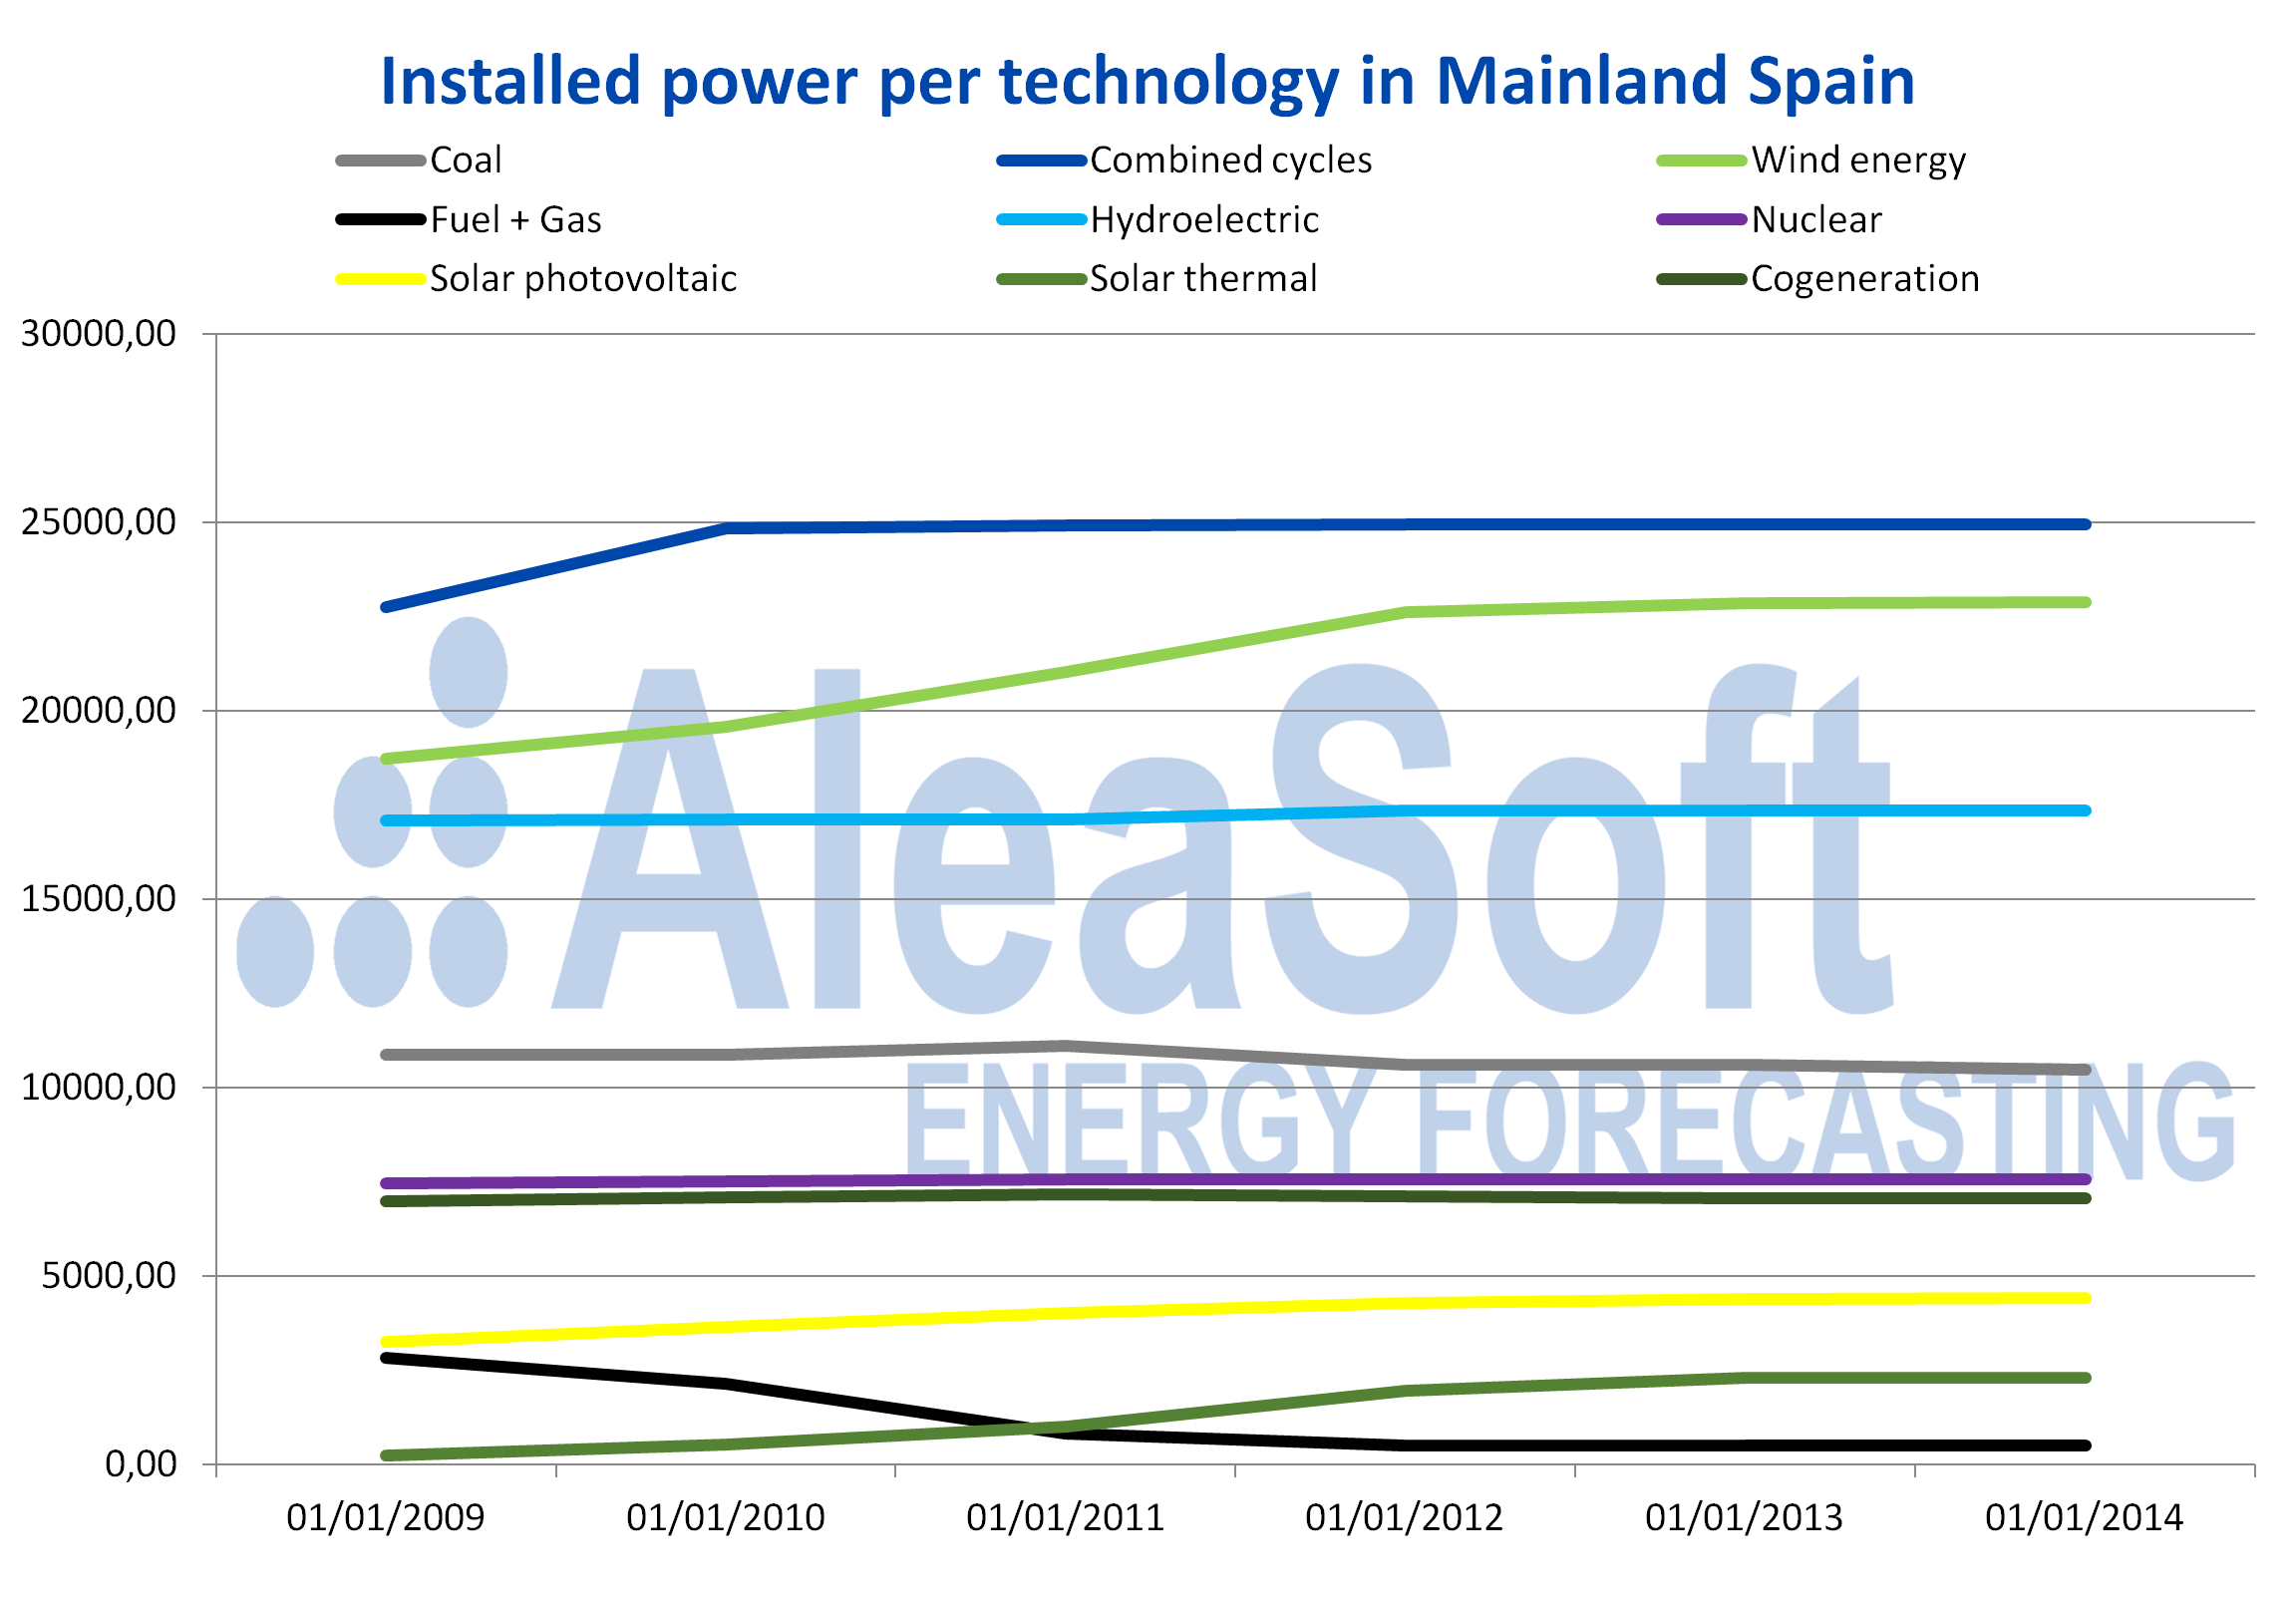 AleaSoft - Installed power per technology mainland Spain